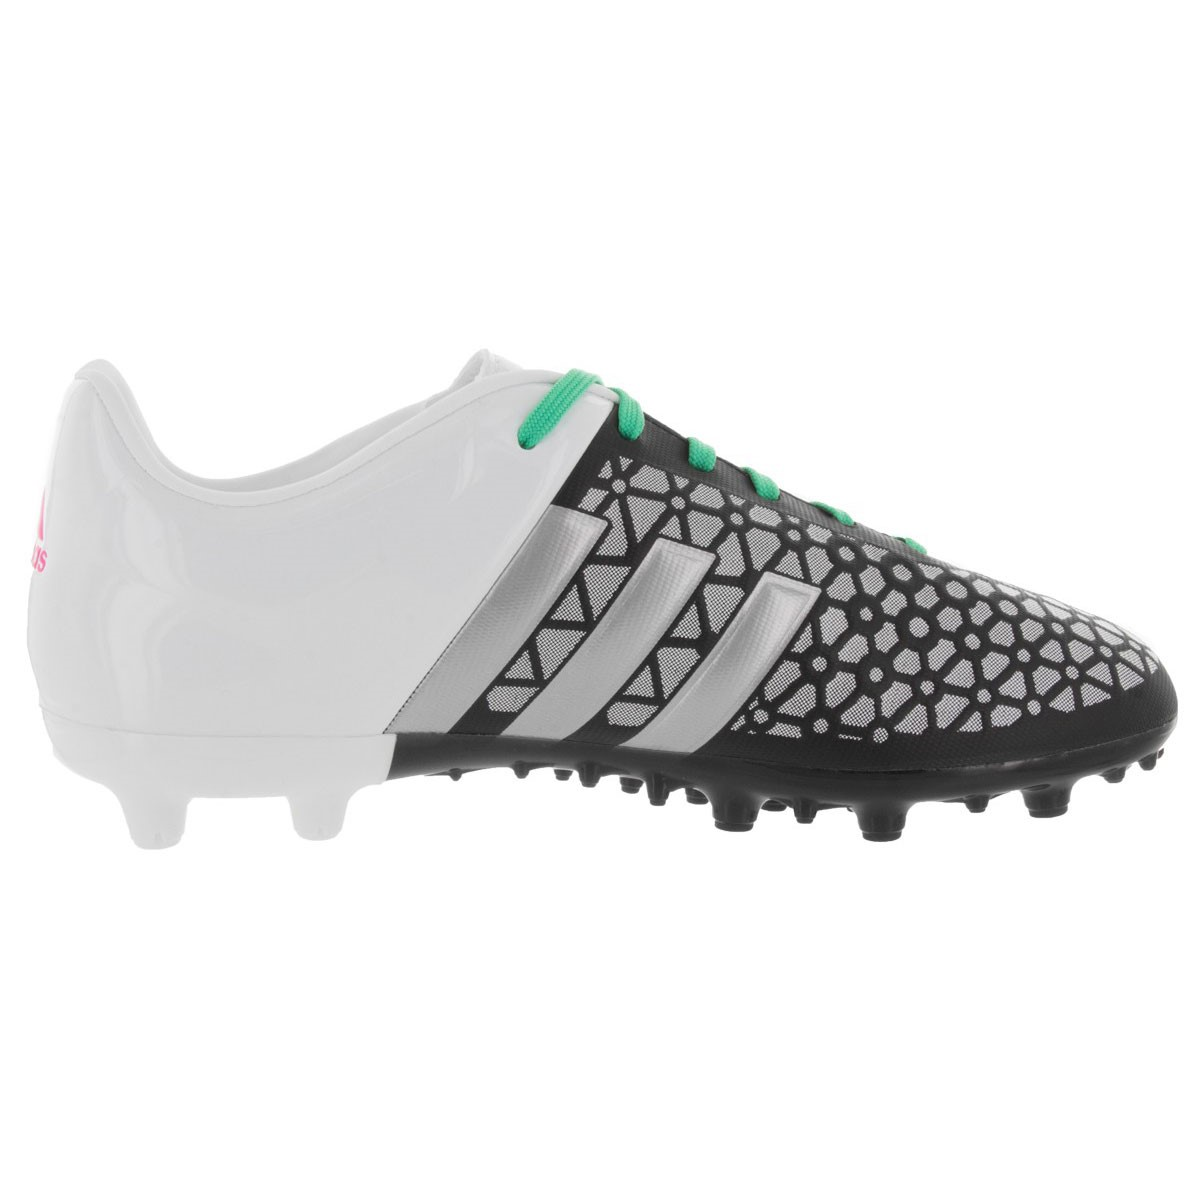 finest selection 24576 96aa5 Adidas Ace 15.3 FG Kids Boys Football Boots